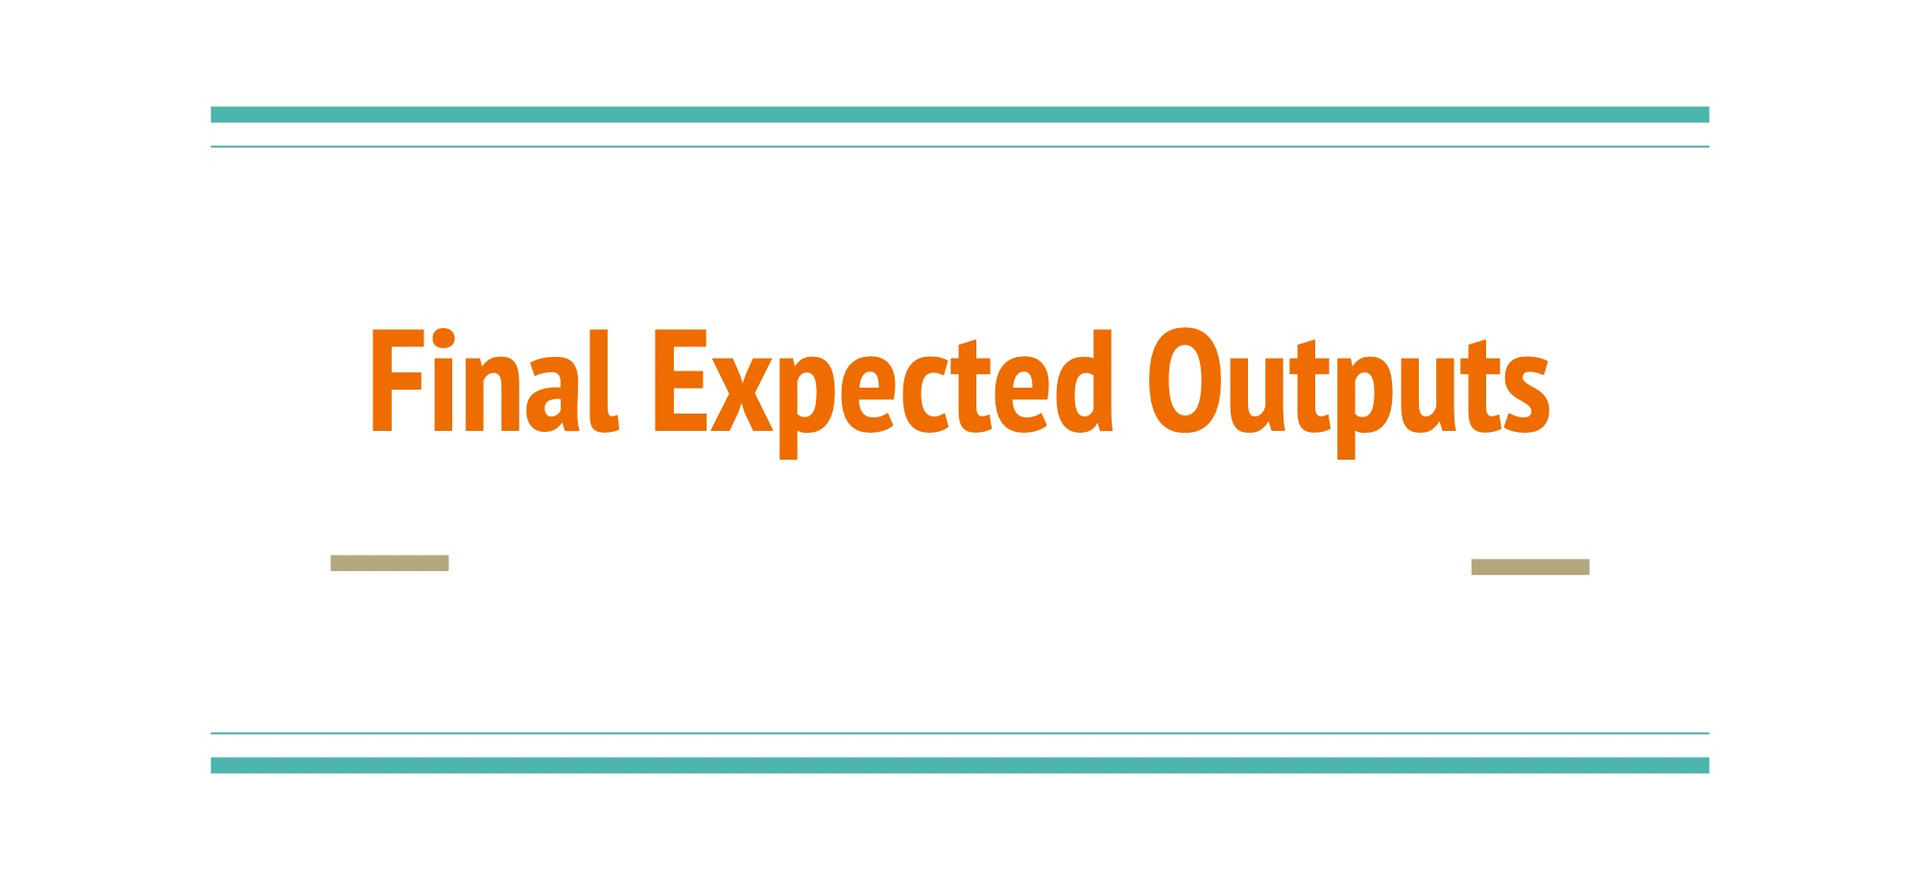 Final Expected Outputs